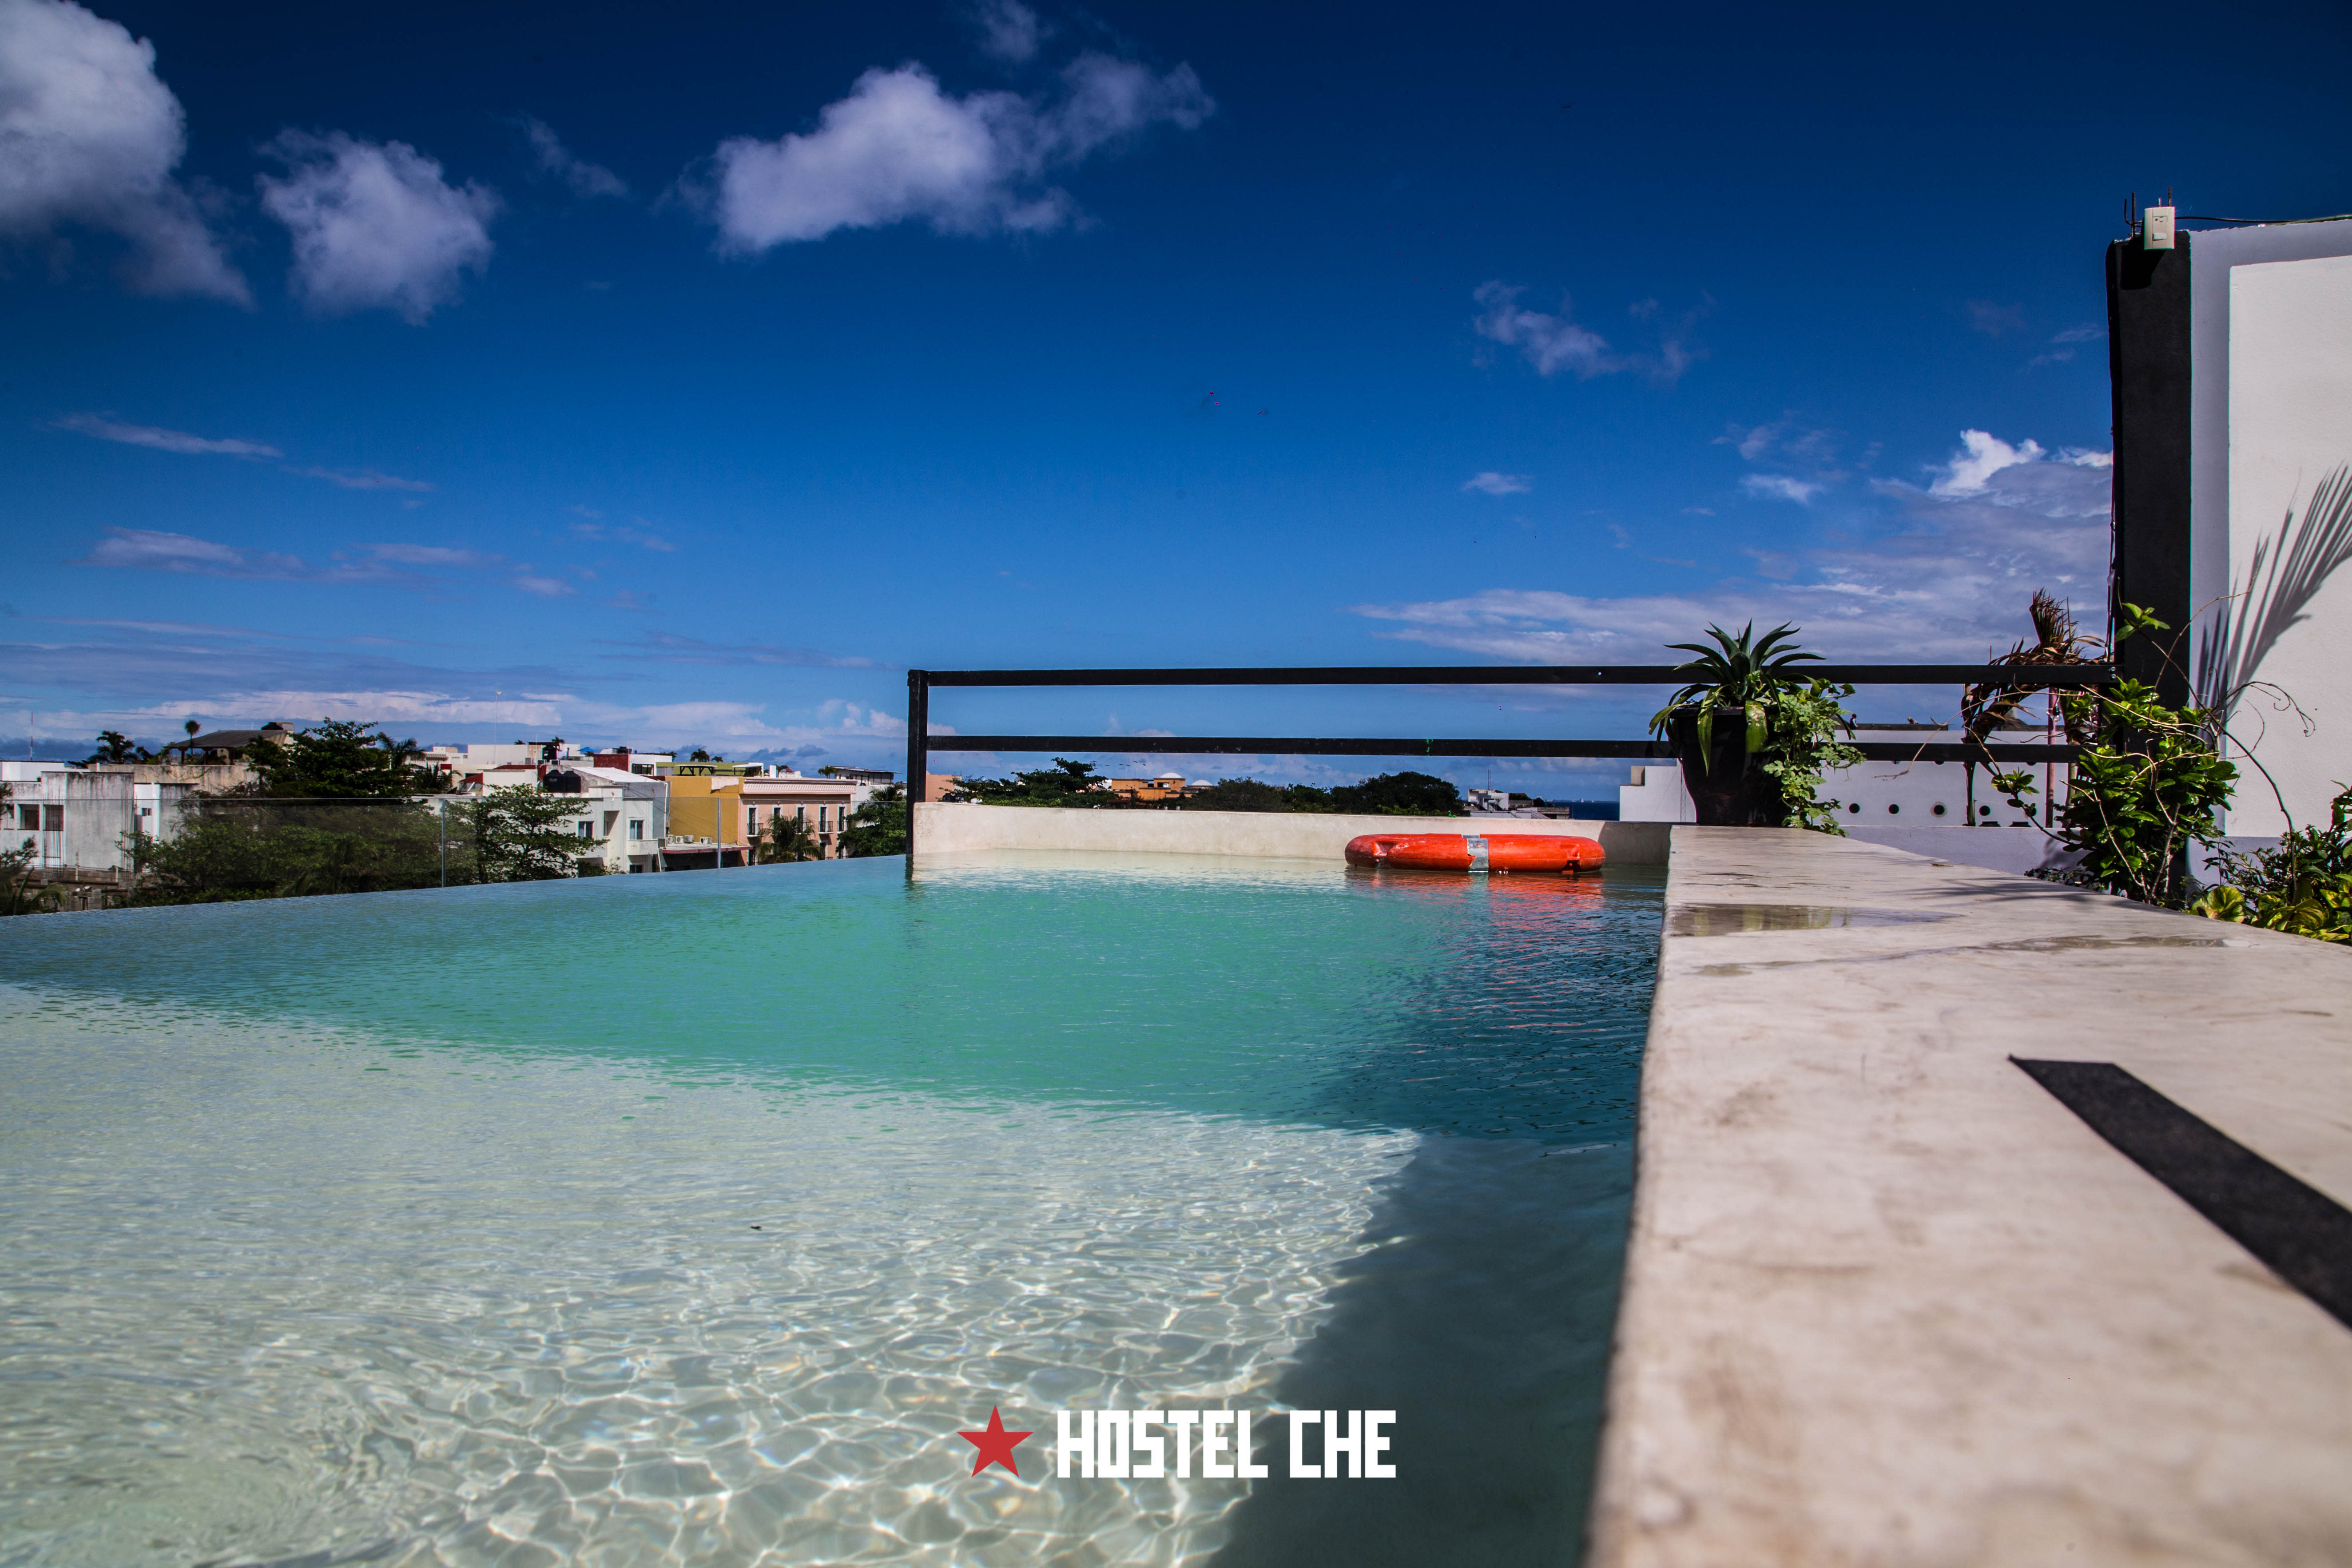 HOSTEL - Hostel Che Playa